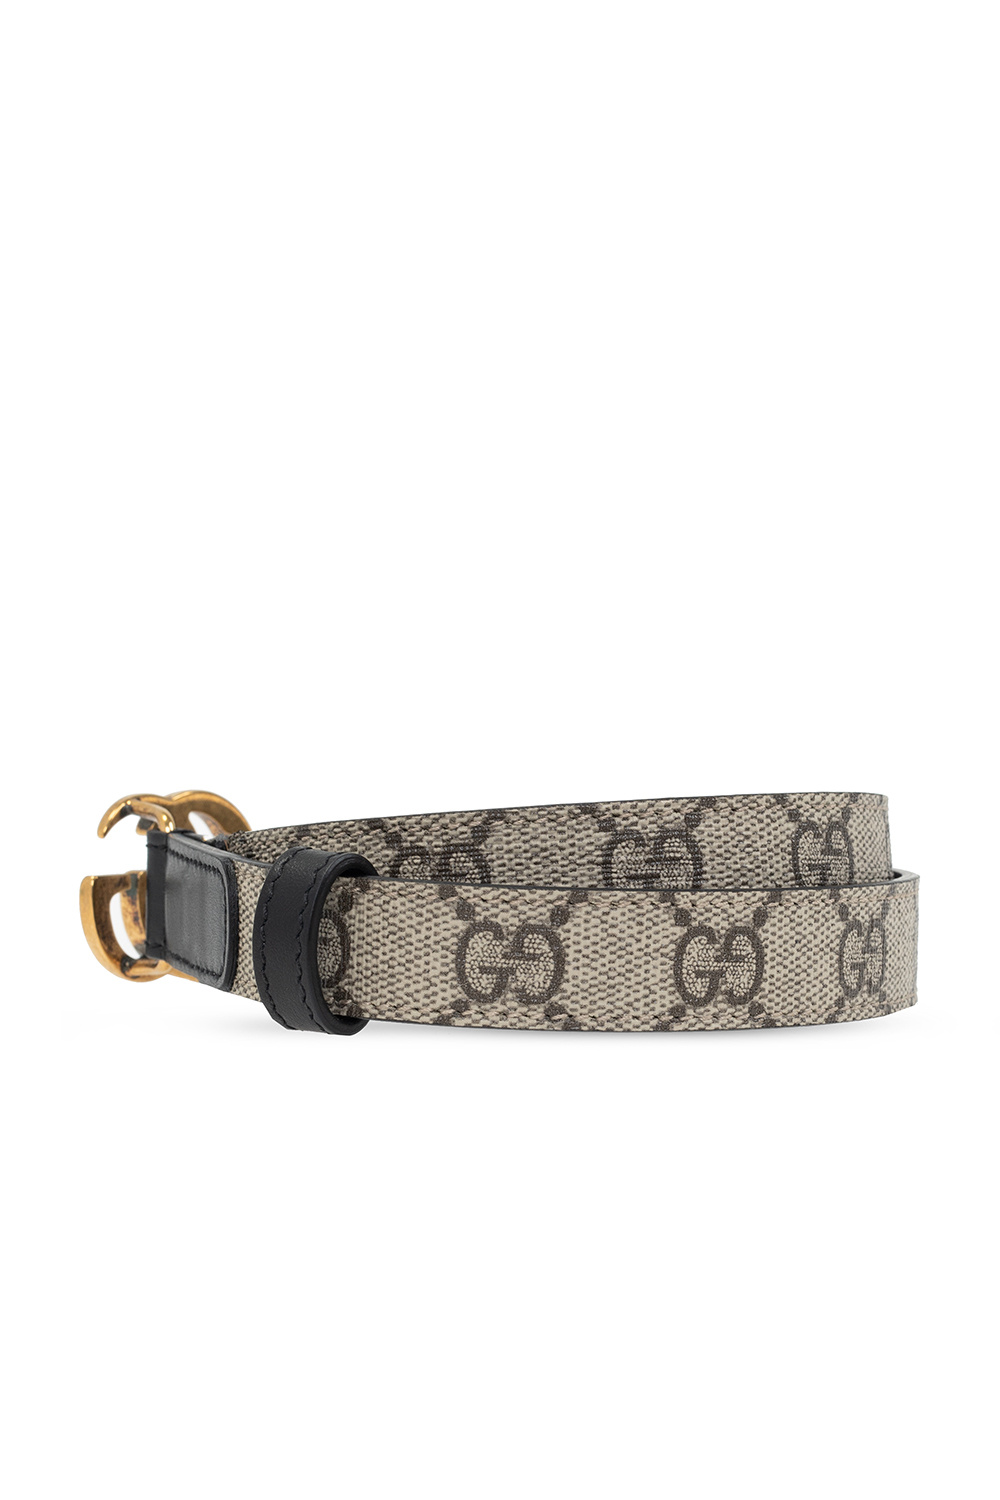 Gucci Belt with logo